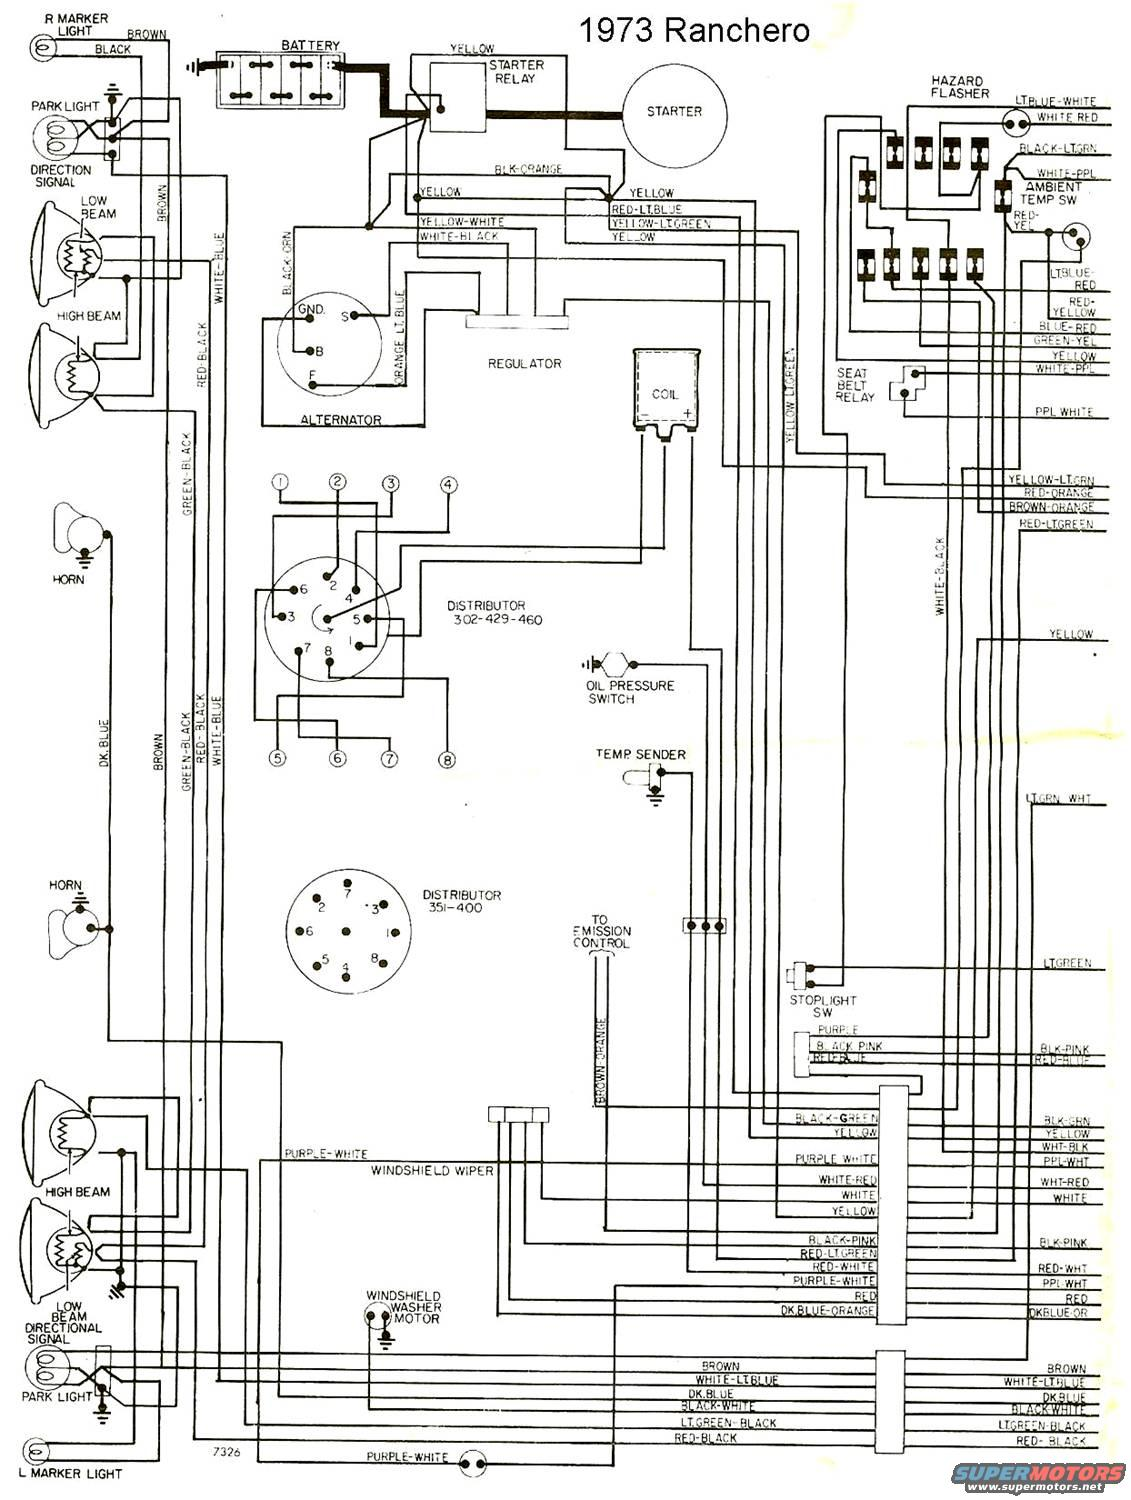 72 ranchero wiring diagram get free image about wiring With 72 3976 wiring diagrams rancherous